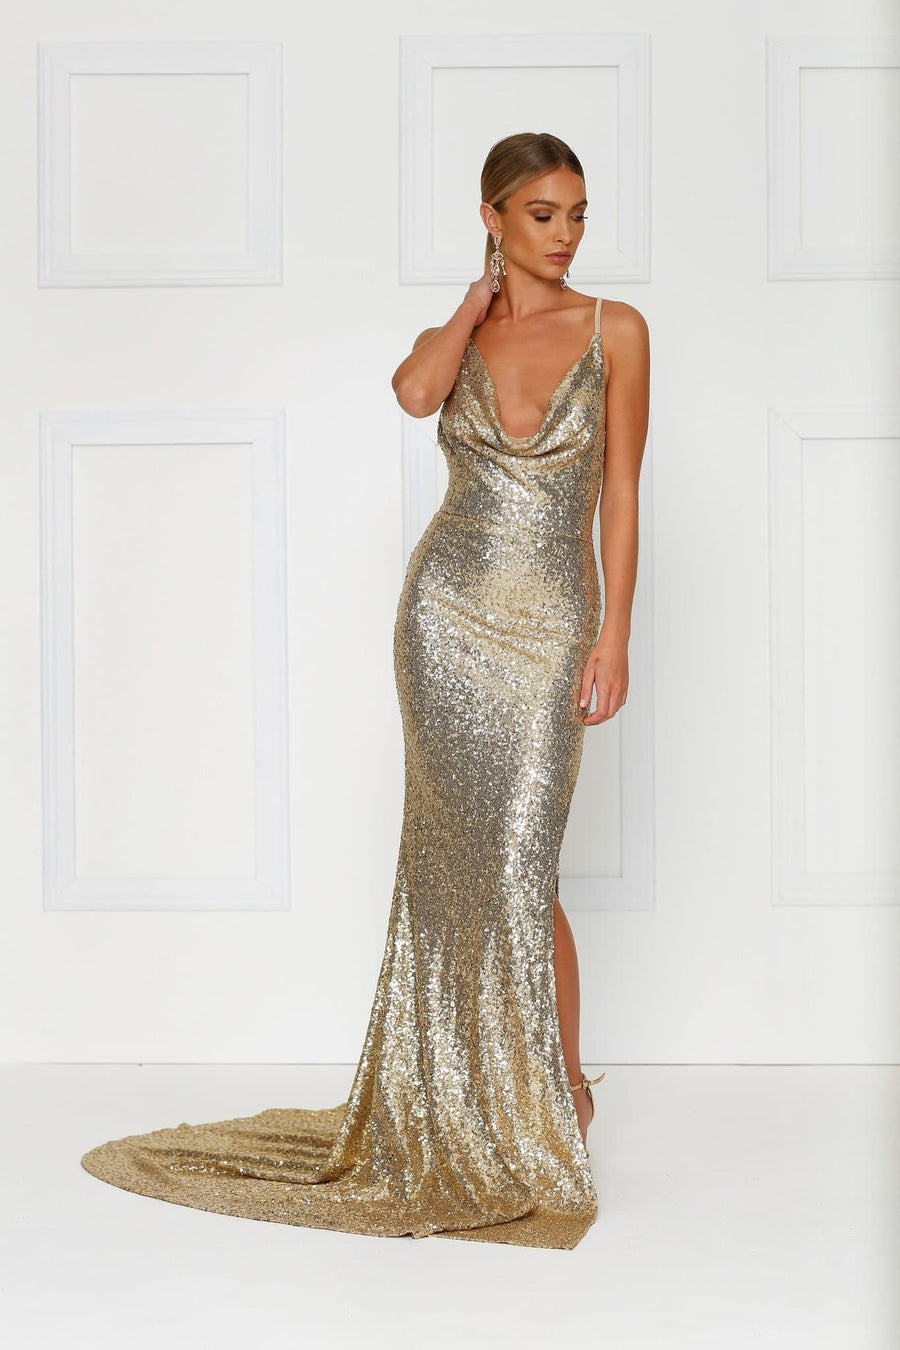 Gold Sequins Evening Gown Cowl neckline side leg split, plunging back Alamour The Label